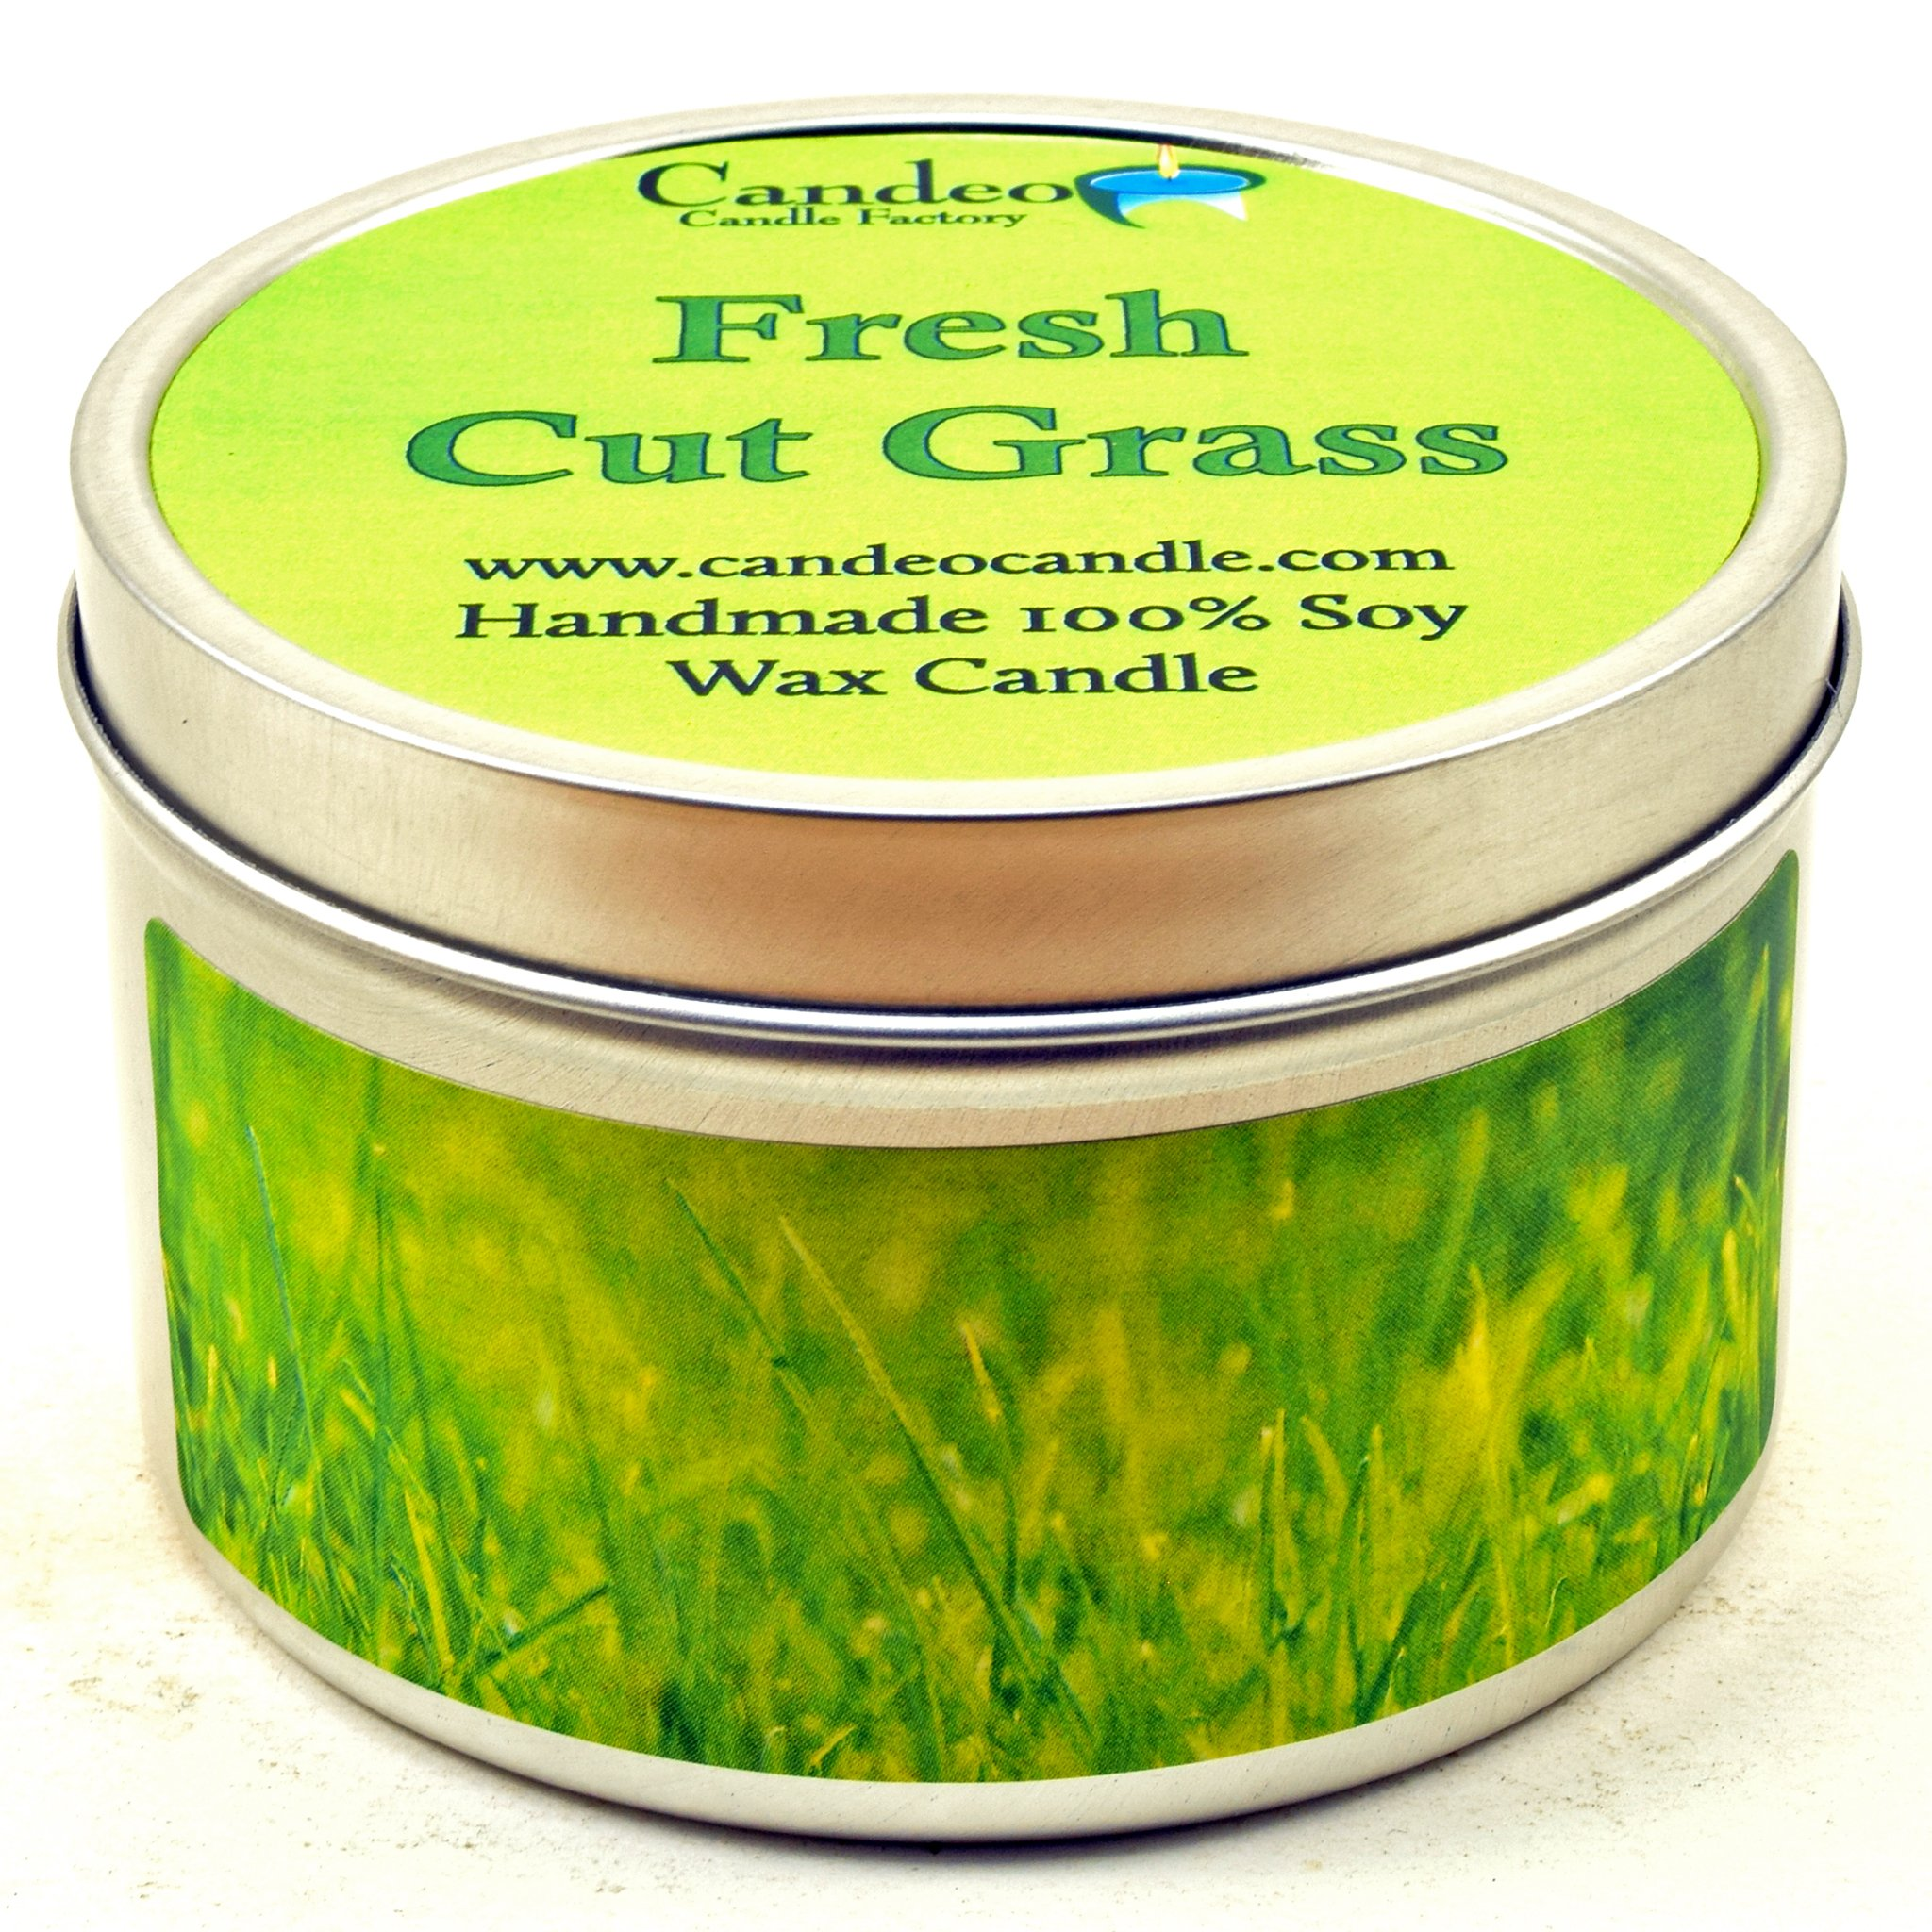 Fresh Cut Grass, Super Scented Soy Candle Tin (6 oz) by Candeo Candle (Image #1)